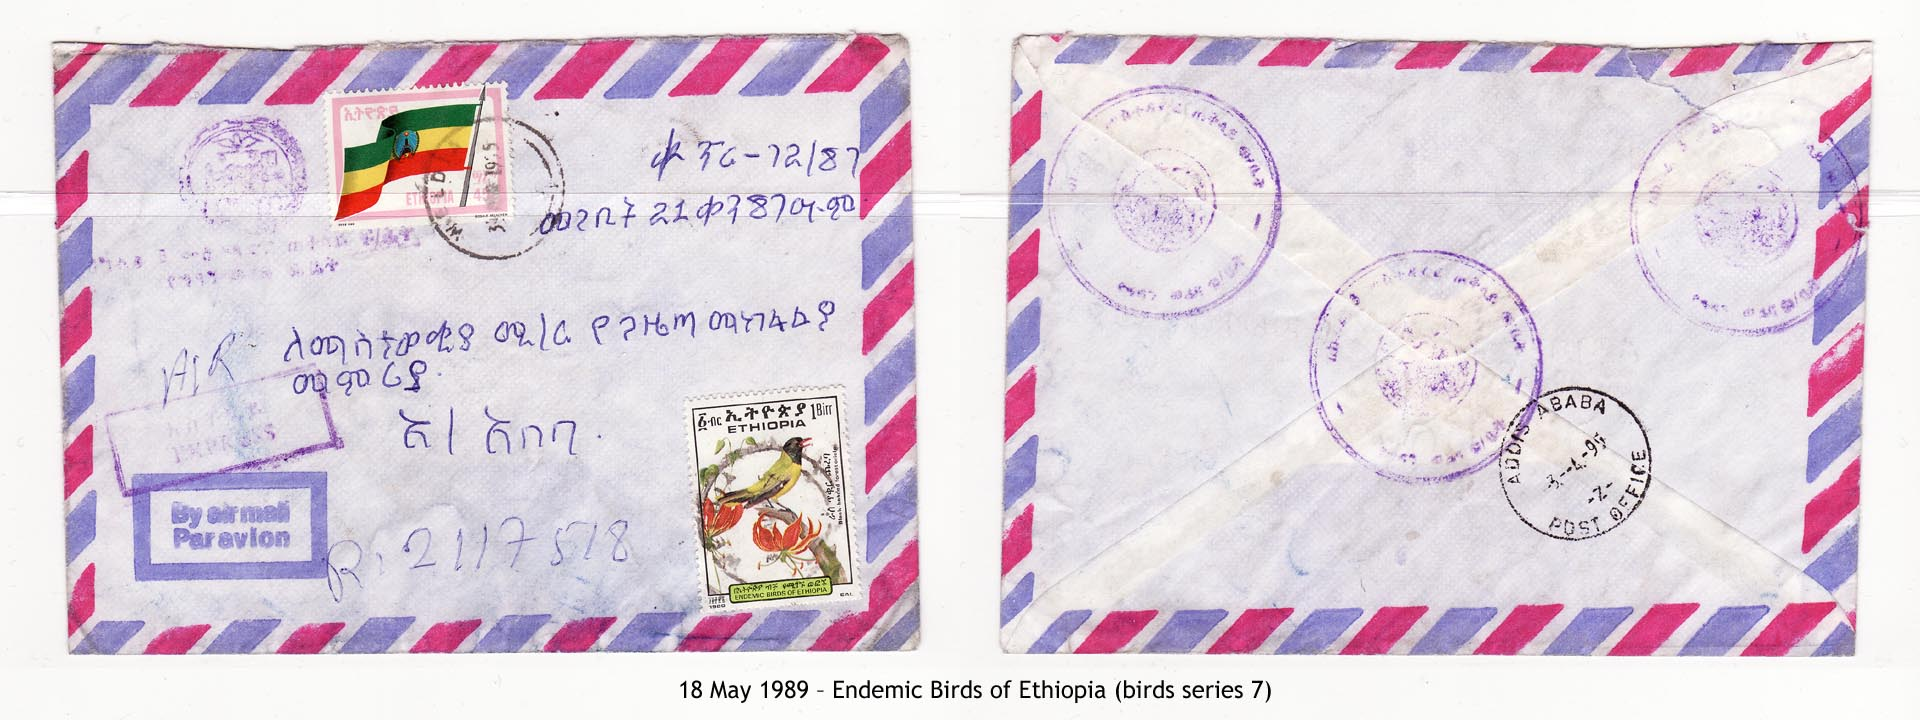 19890518 – Endemic Birds of Ethiopia (birds series 7)